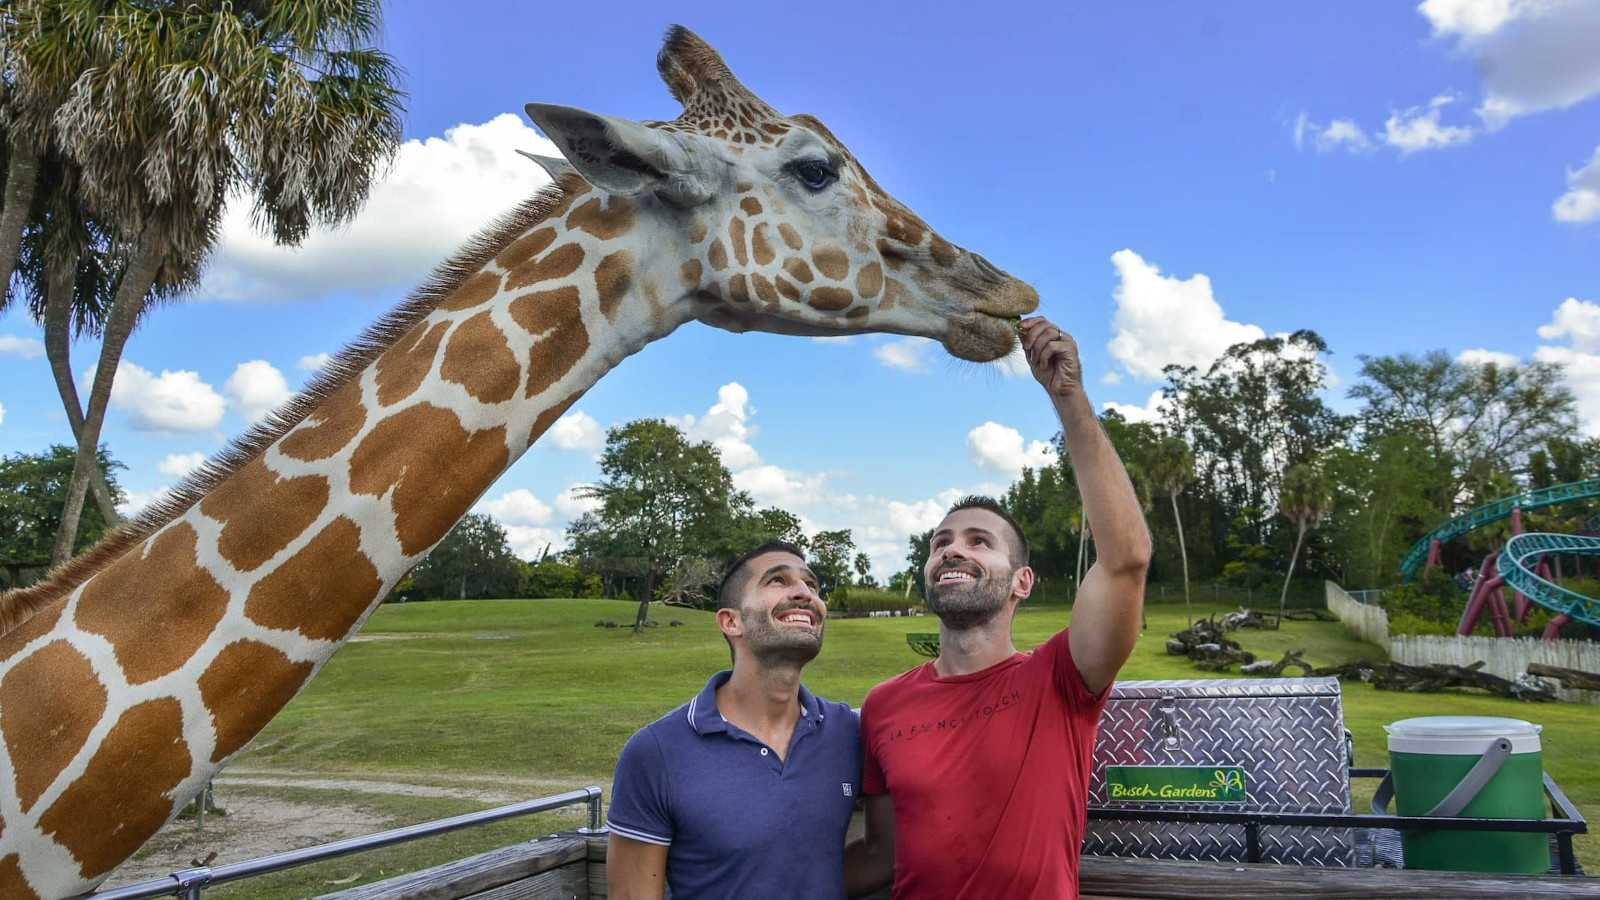 Feeding a giraffe on a safari in Busch Gardens in Tampa